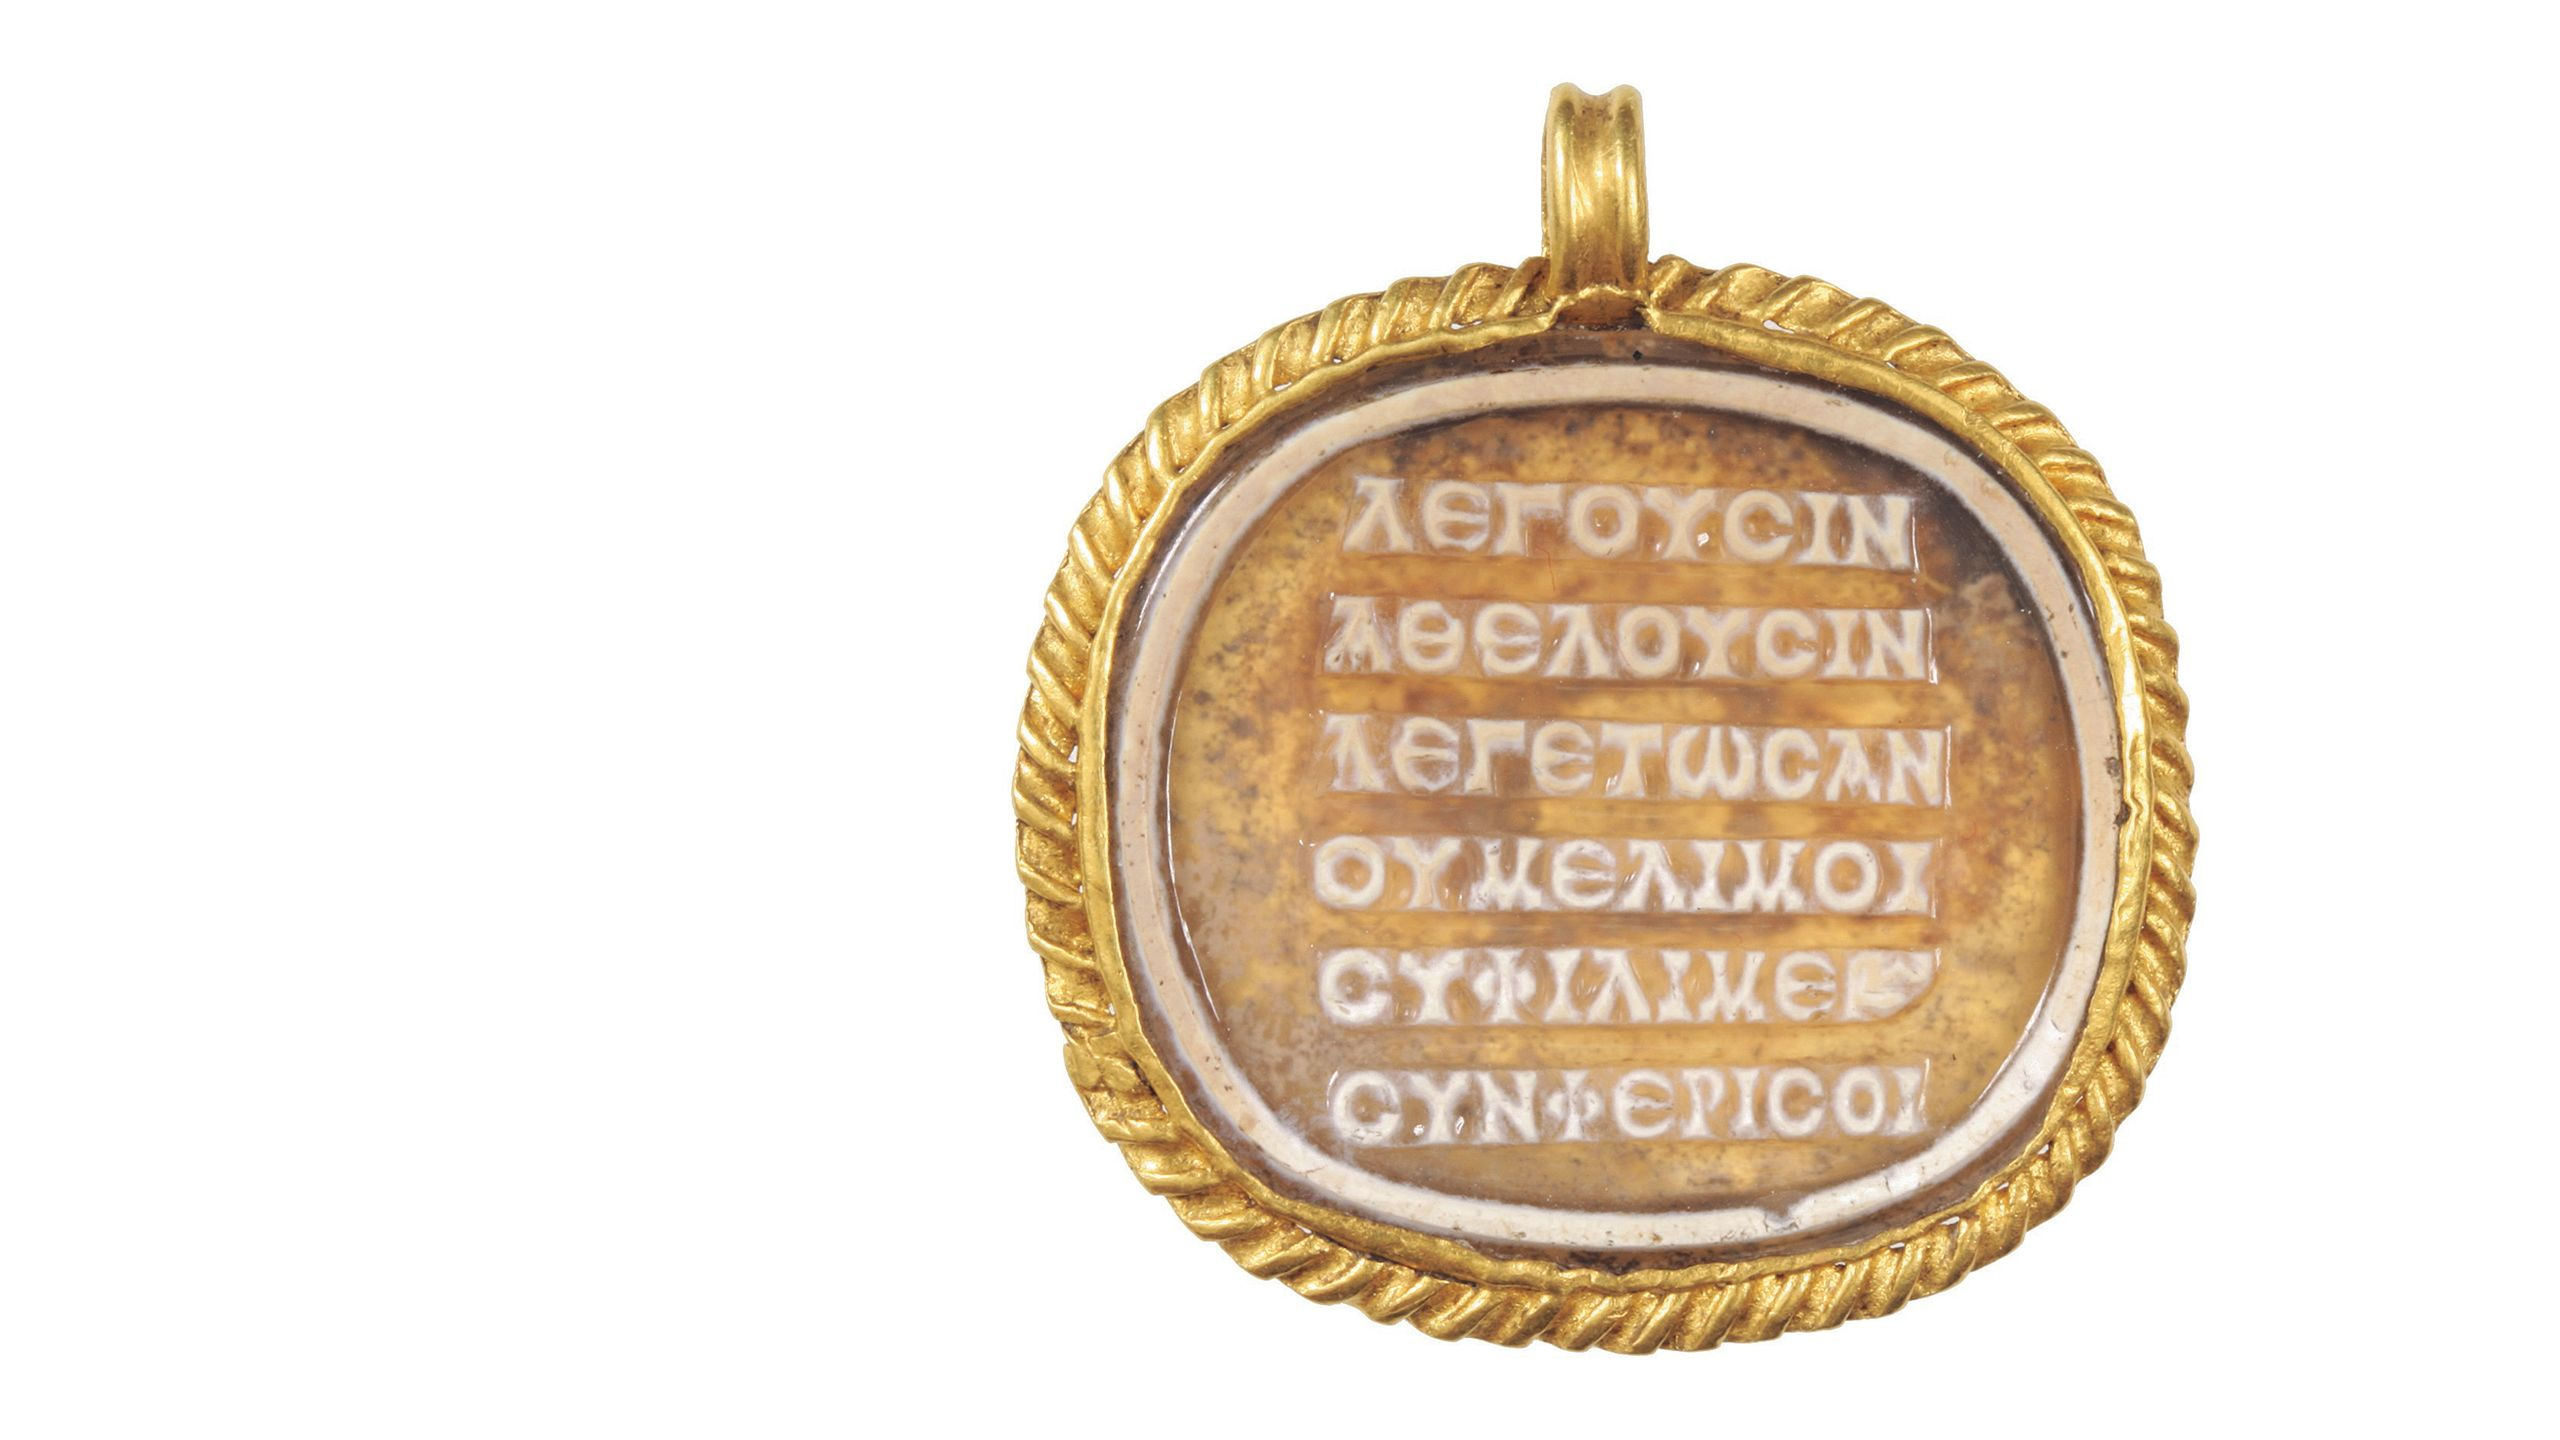 Ancient Greek 'stressed' poem inscribed on a cameo on a medallion of glass paste (2nd to 3rd century CE). Image: BHM Aquincum Museum and Archaeological Park / Péter Komjáthy